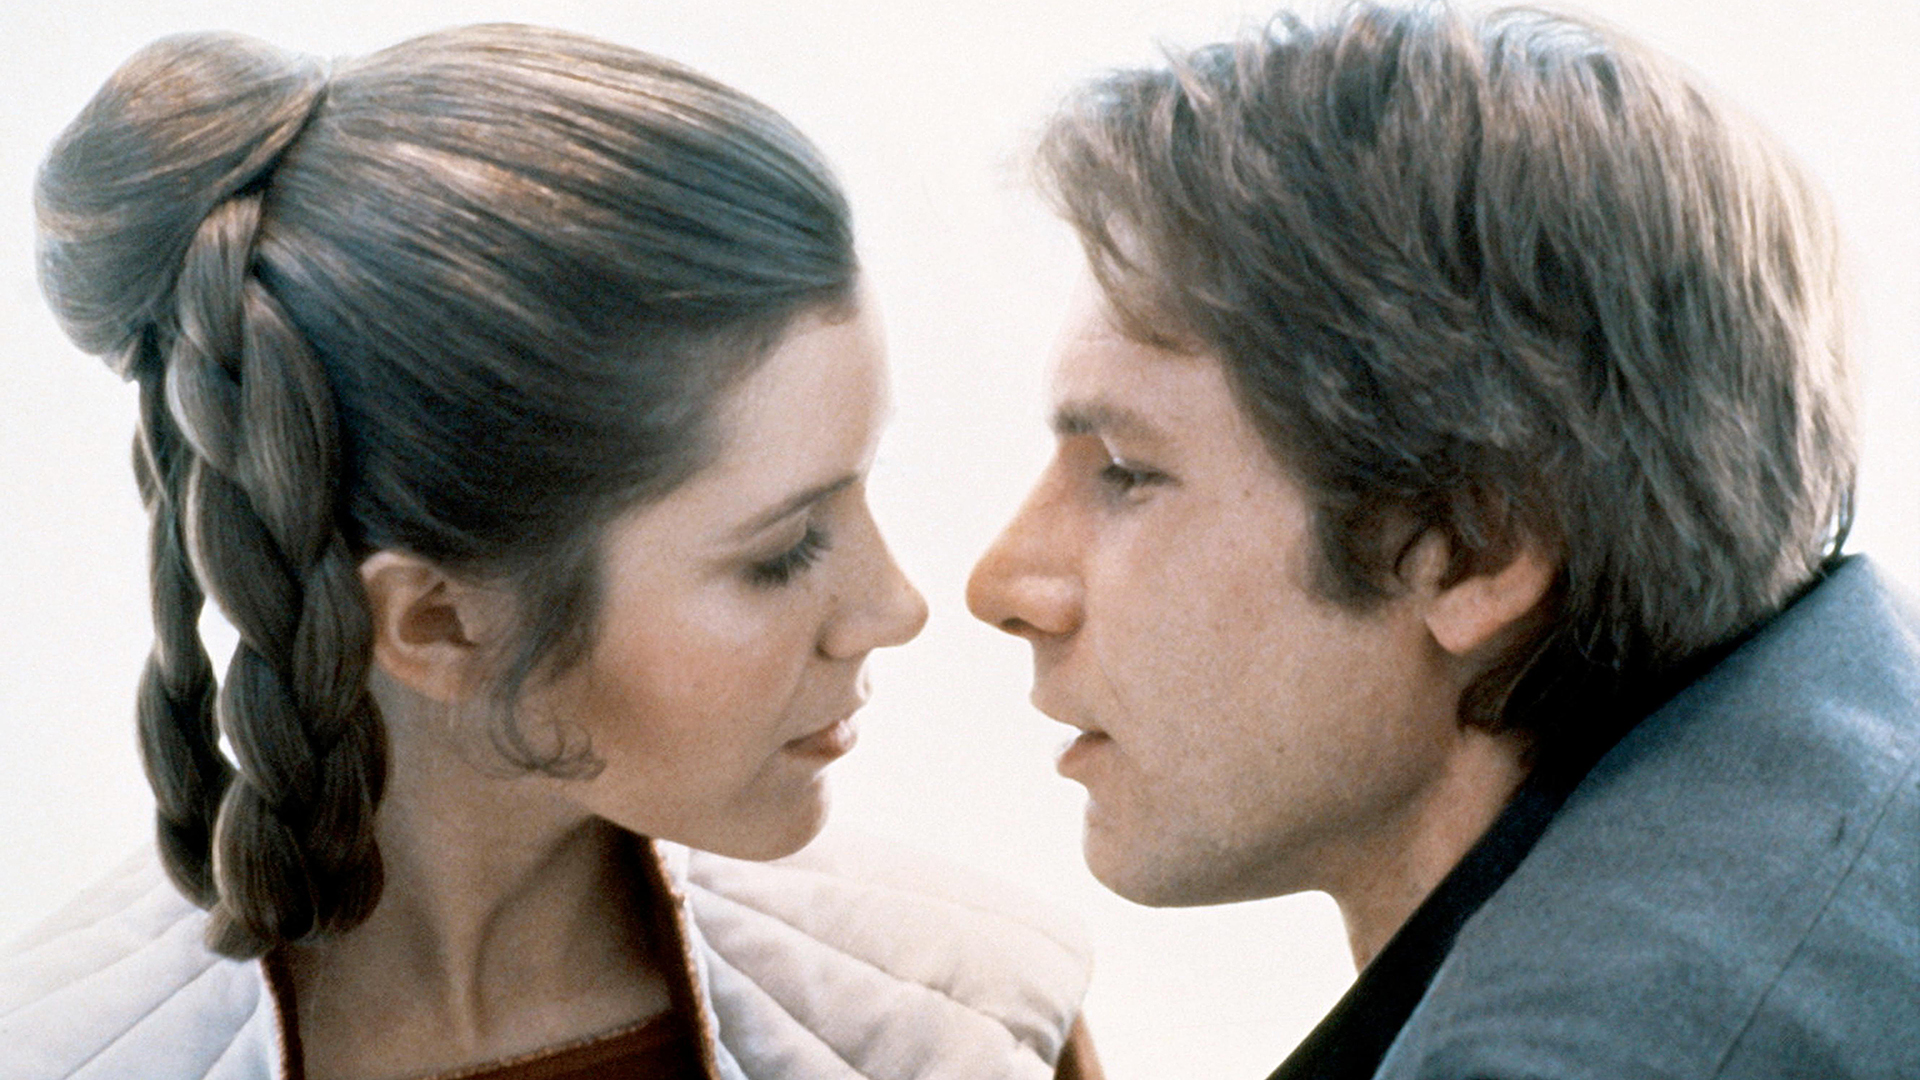 Carrie Fisher Reveals Intense Affair With Harrison Ford During Star Wars